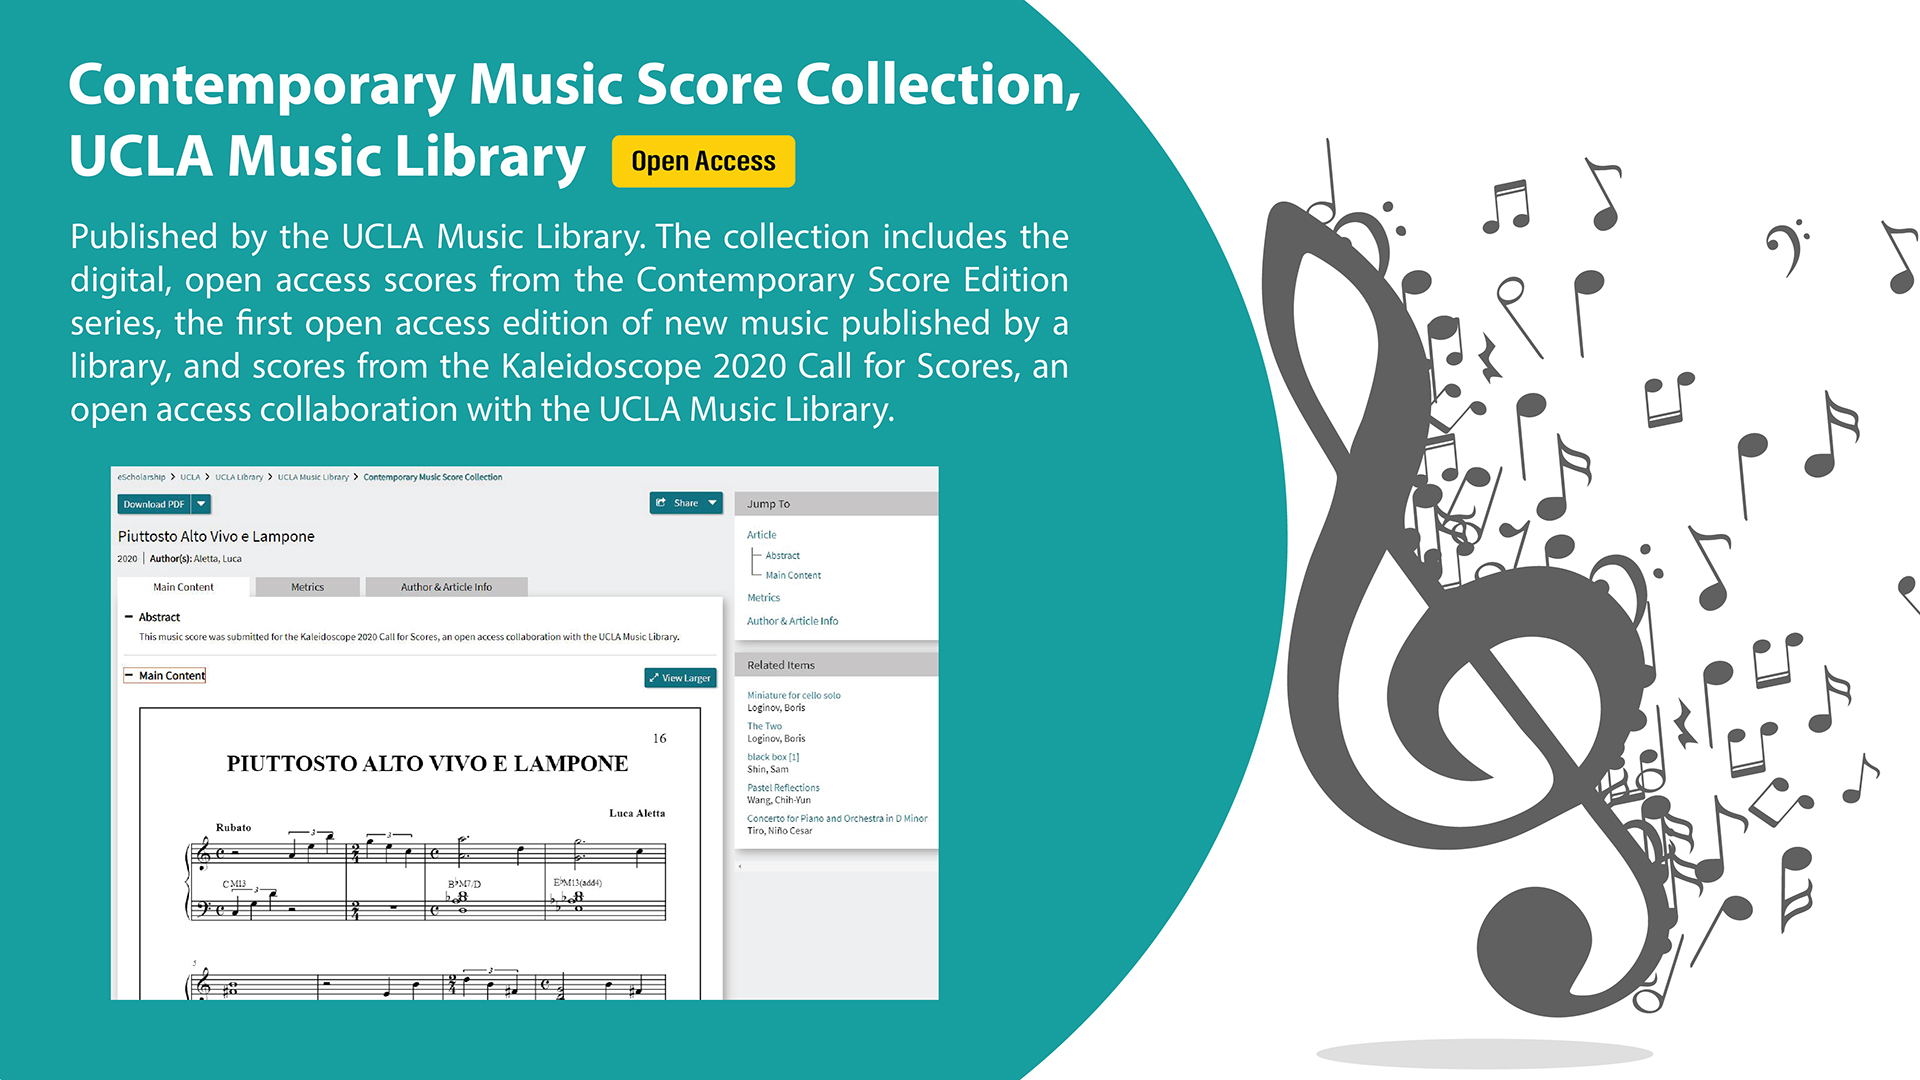 Contemporary Music Score Collection, UCLA Music Library